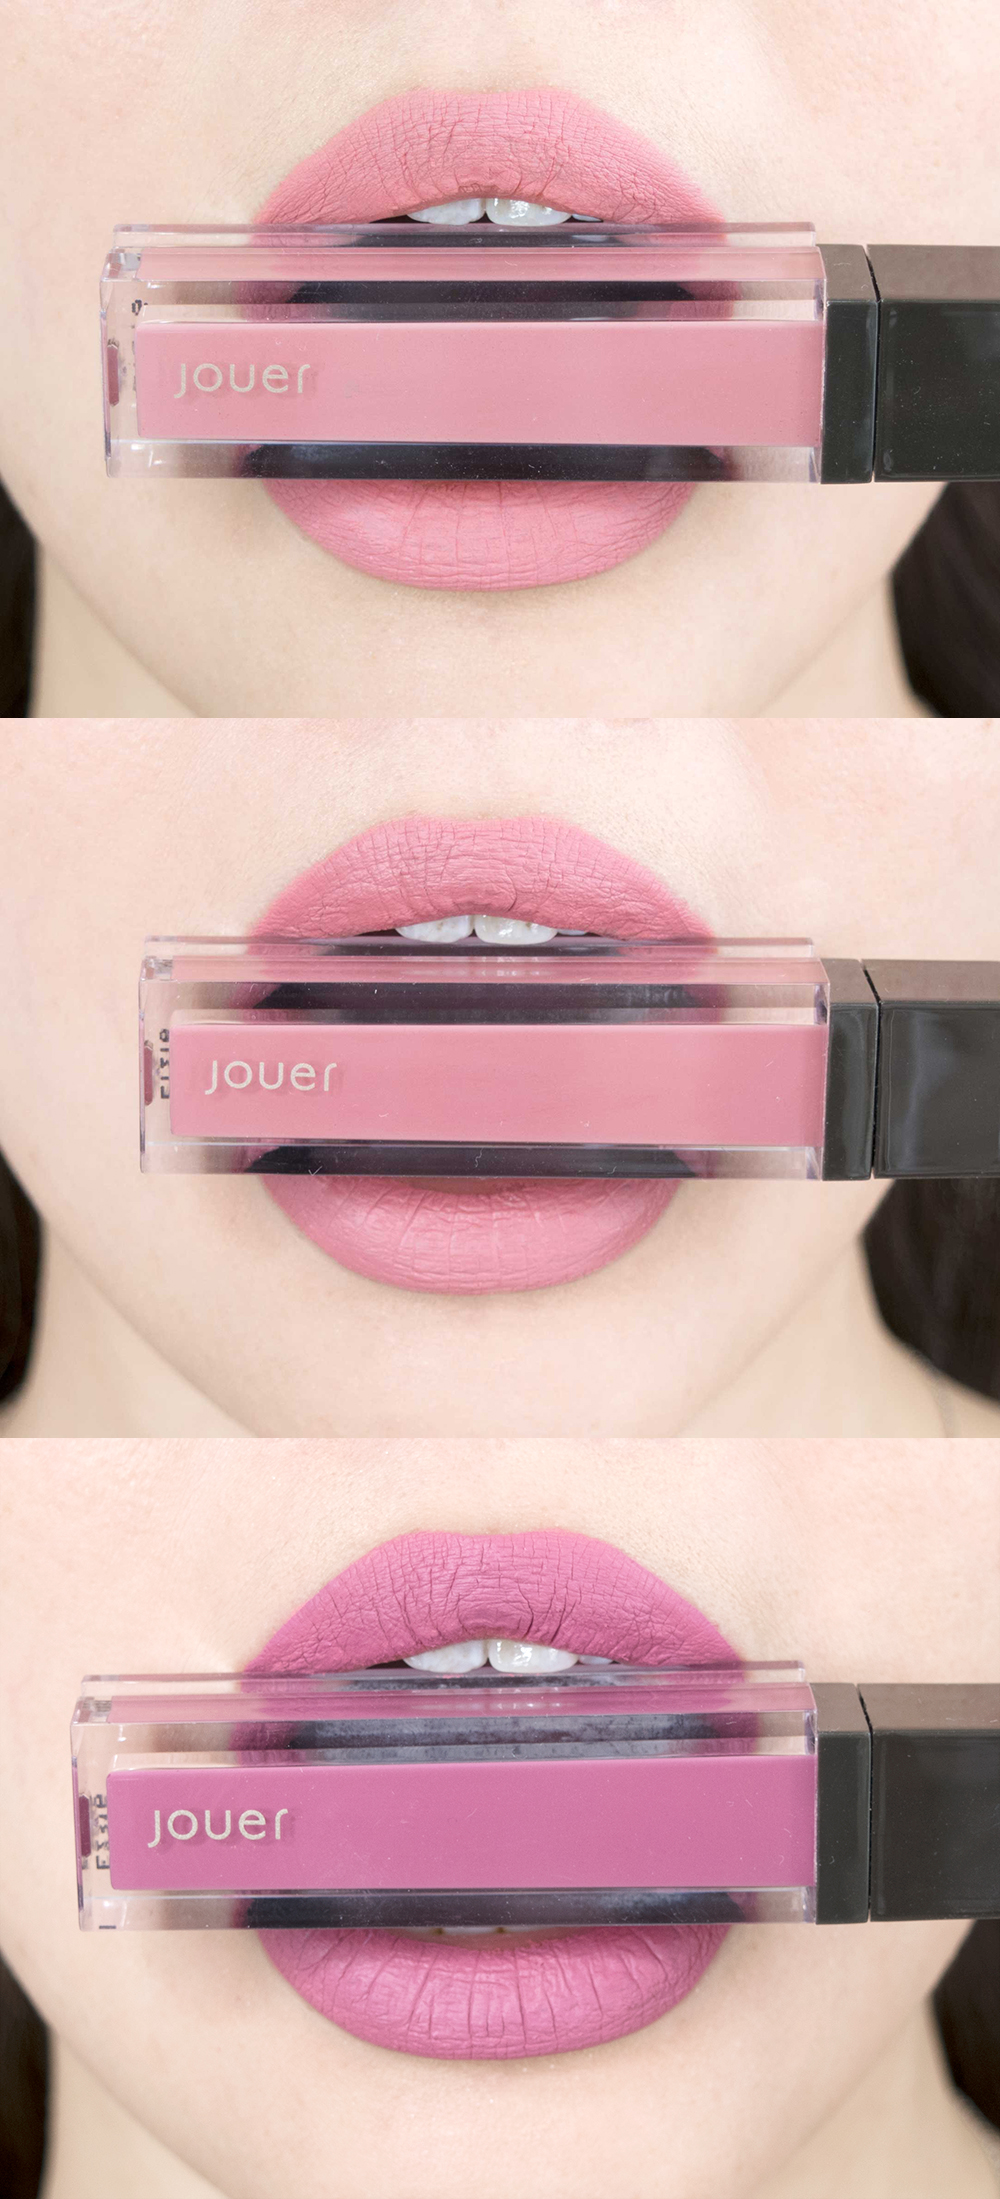 Jouer Cosmetics Long Wear Lip Creme Liquid Lipstick Swatches Combined